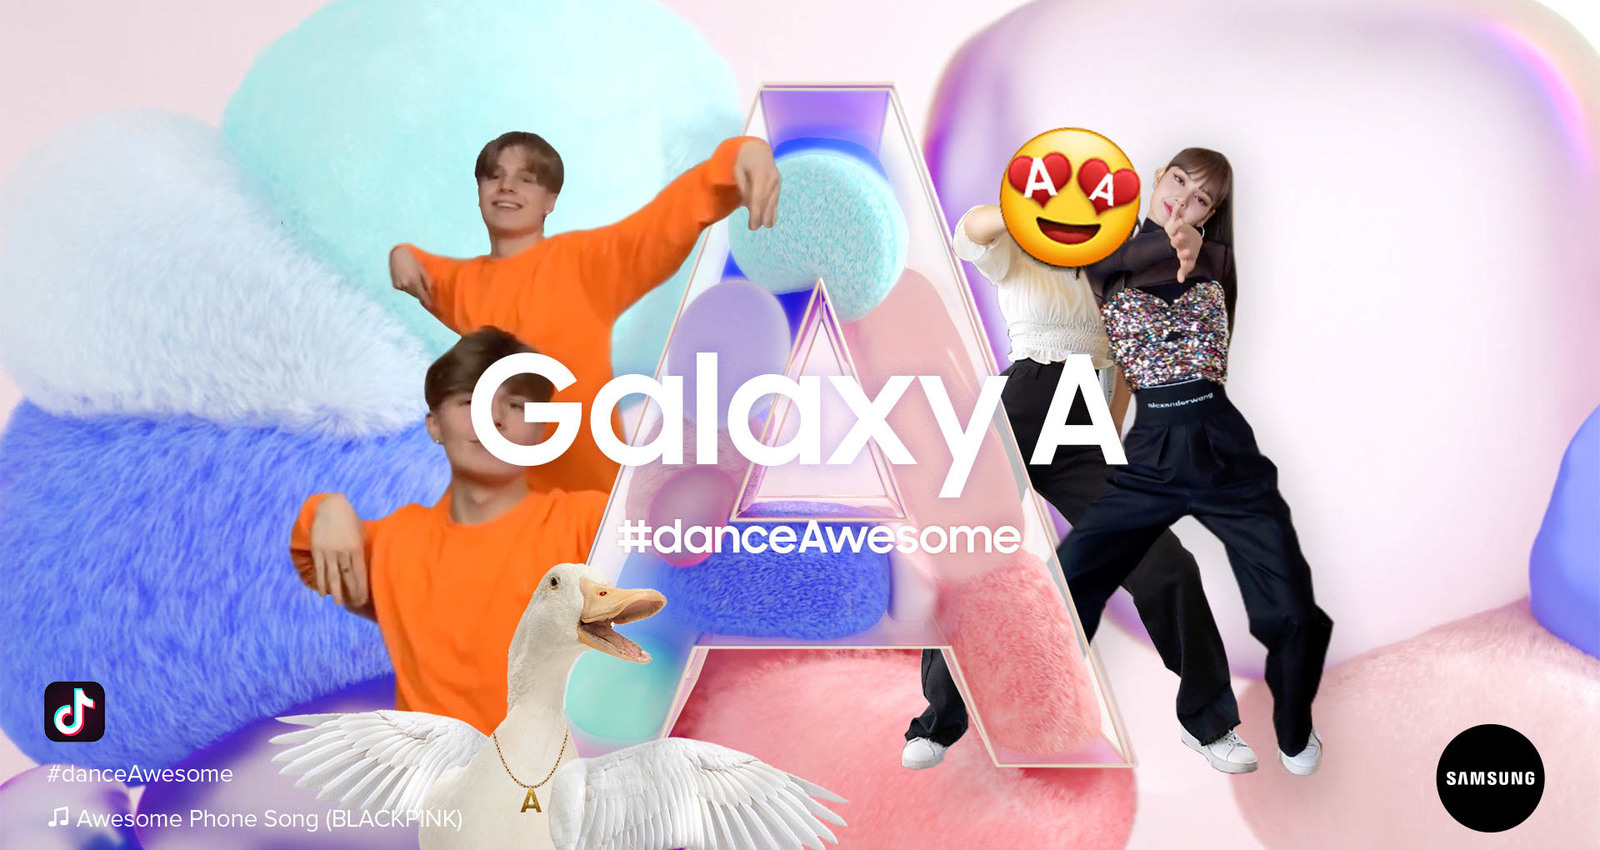 Samsung Galaxy A - #danceAwesome